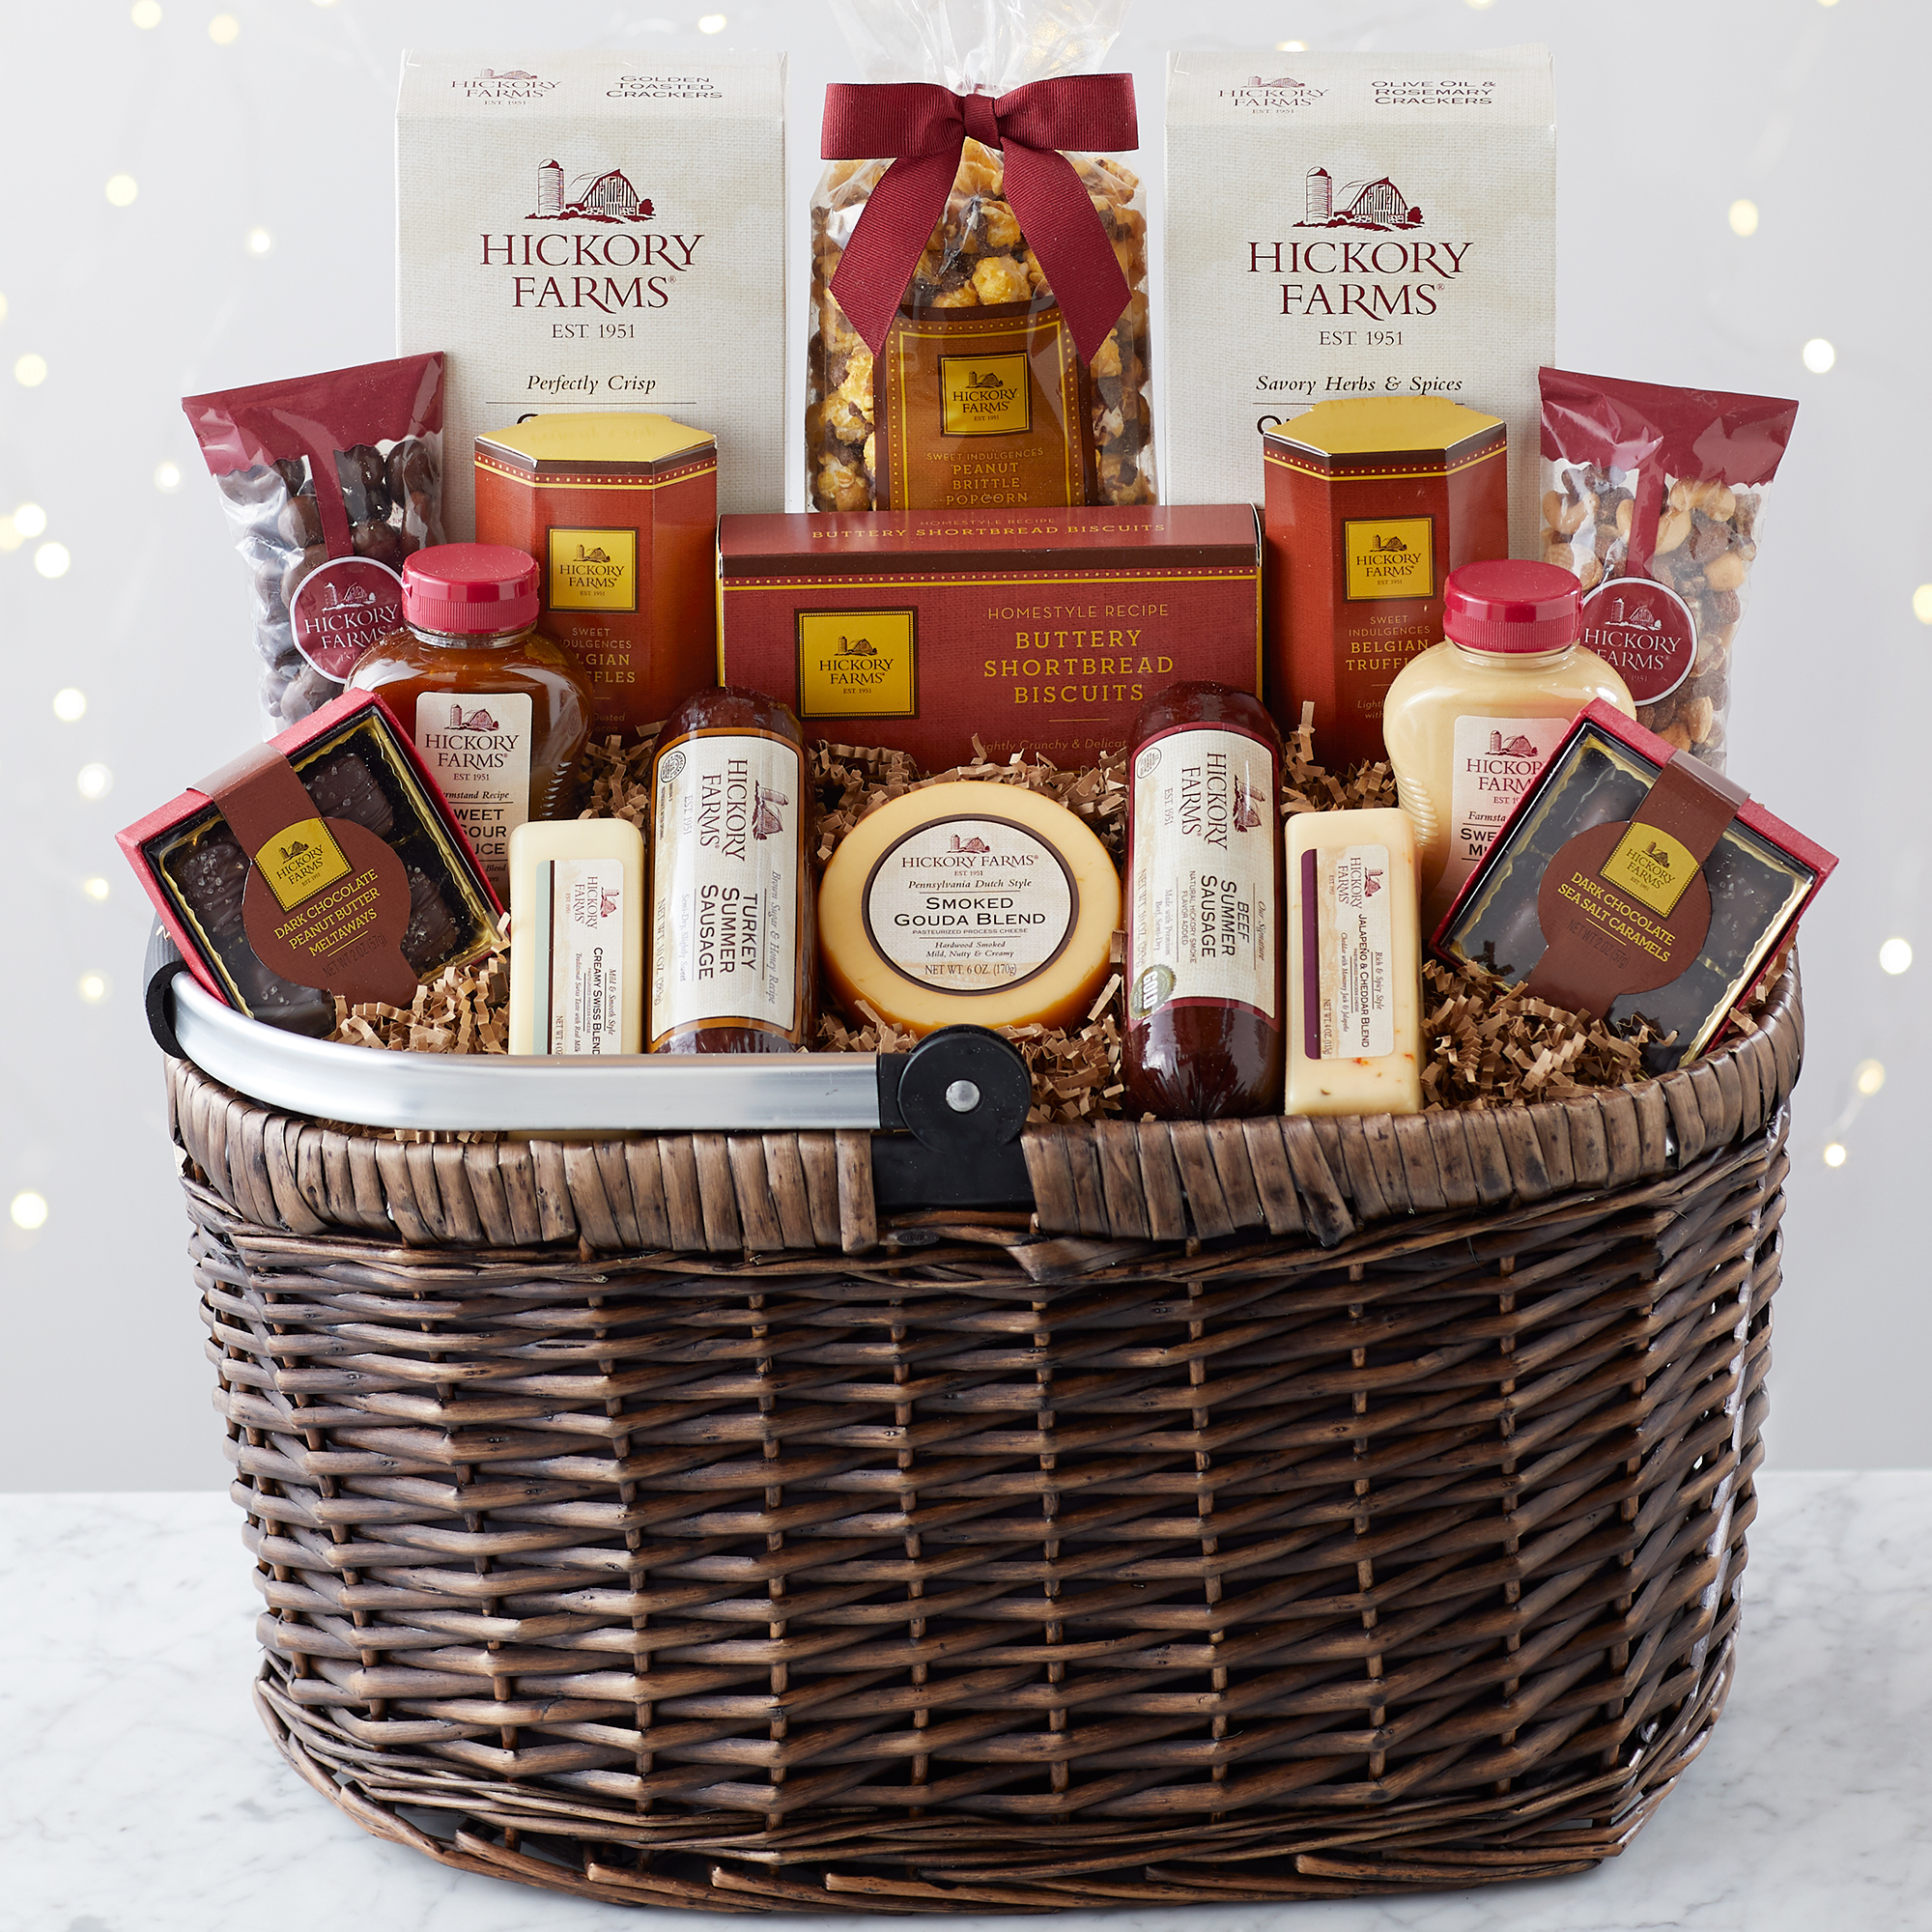 Picnic Basket includes sausage, cheese, mustard, crackers, nuts, chocolates, and · Hickory Farms ...